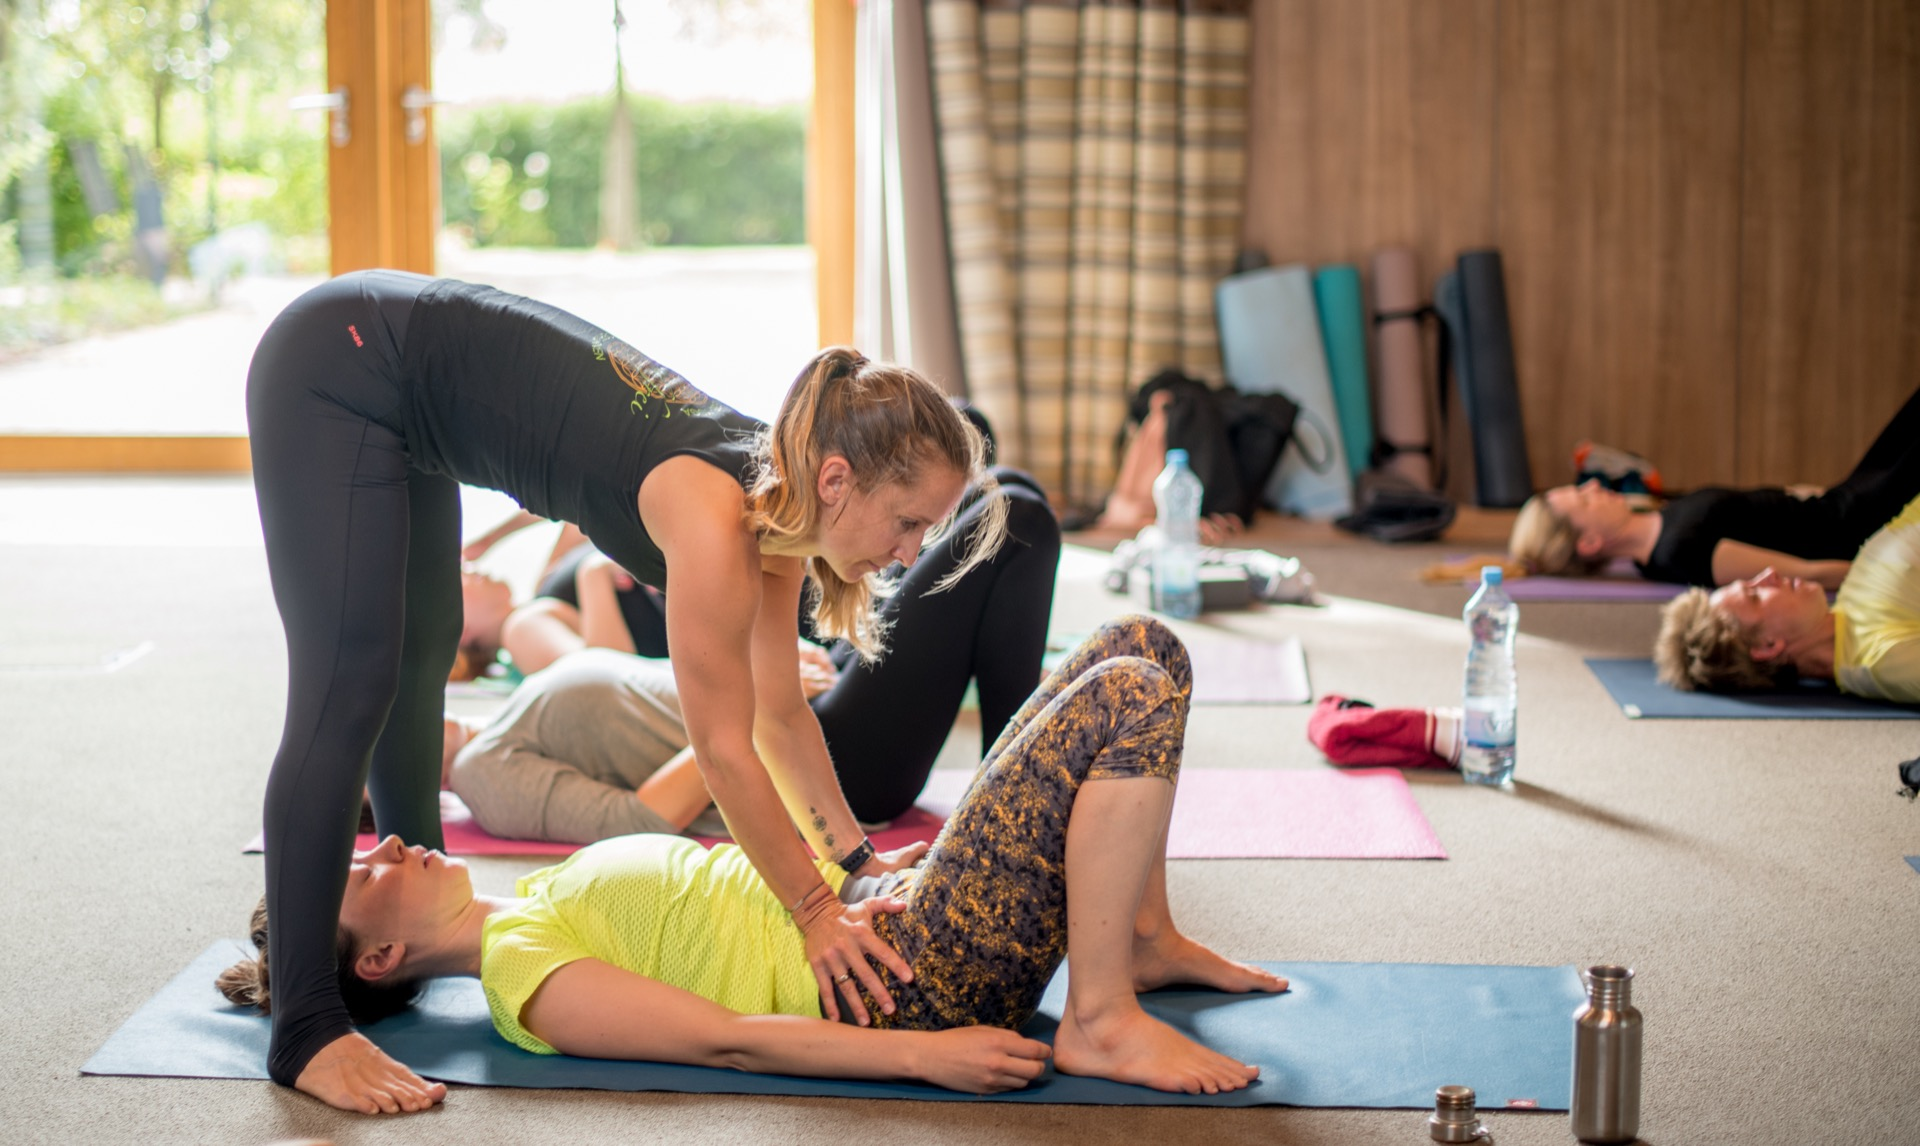 Hie-Kim-Friends-2019-Yoga-Retreat-Alina-Matis-Photography-148 - Hie Kim Yoga - Yoga Retreat - Yoga Workshops und Reisen